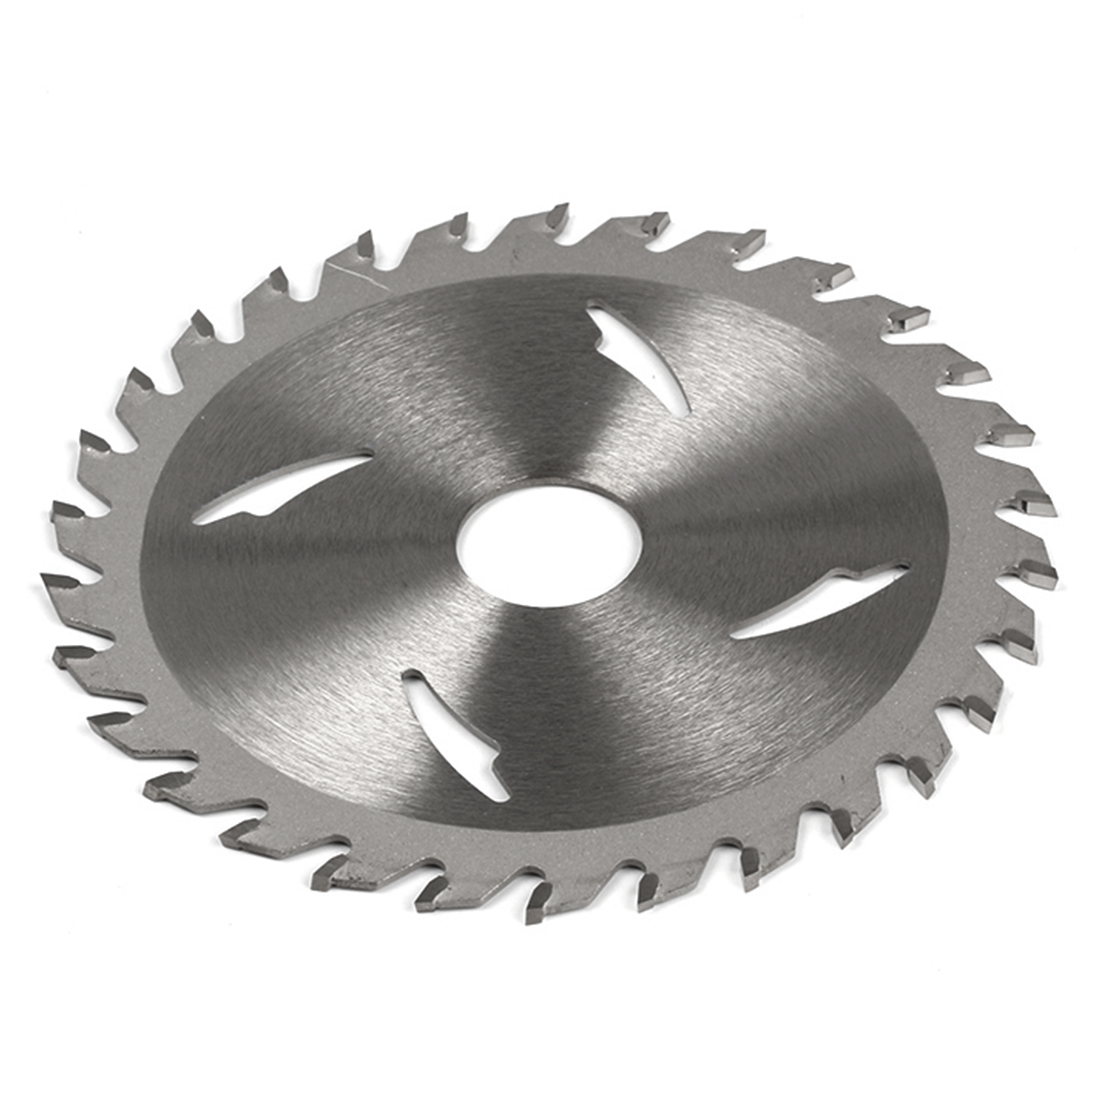 High 1PC 125/110mm*20mm 24T/30T/40T TCT Saw Blade Carbide Tipped Wood Cutting Disc For DIY&Decoration General Wood Cutting